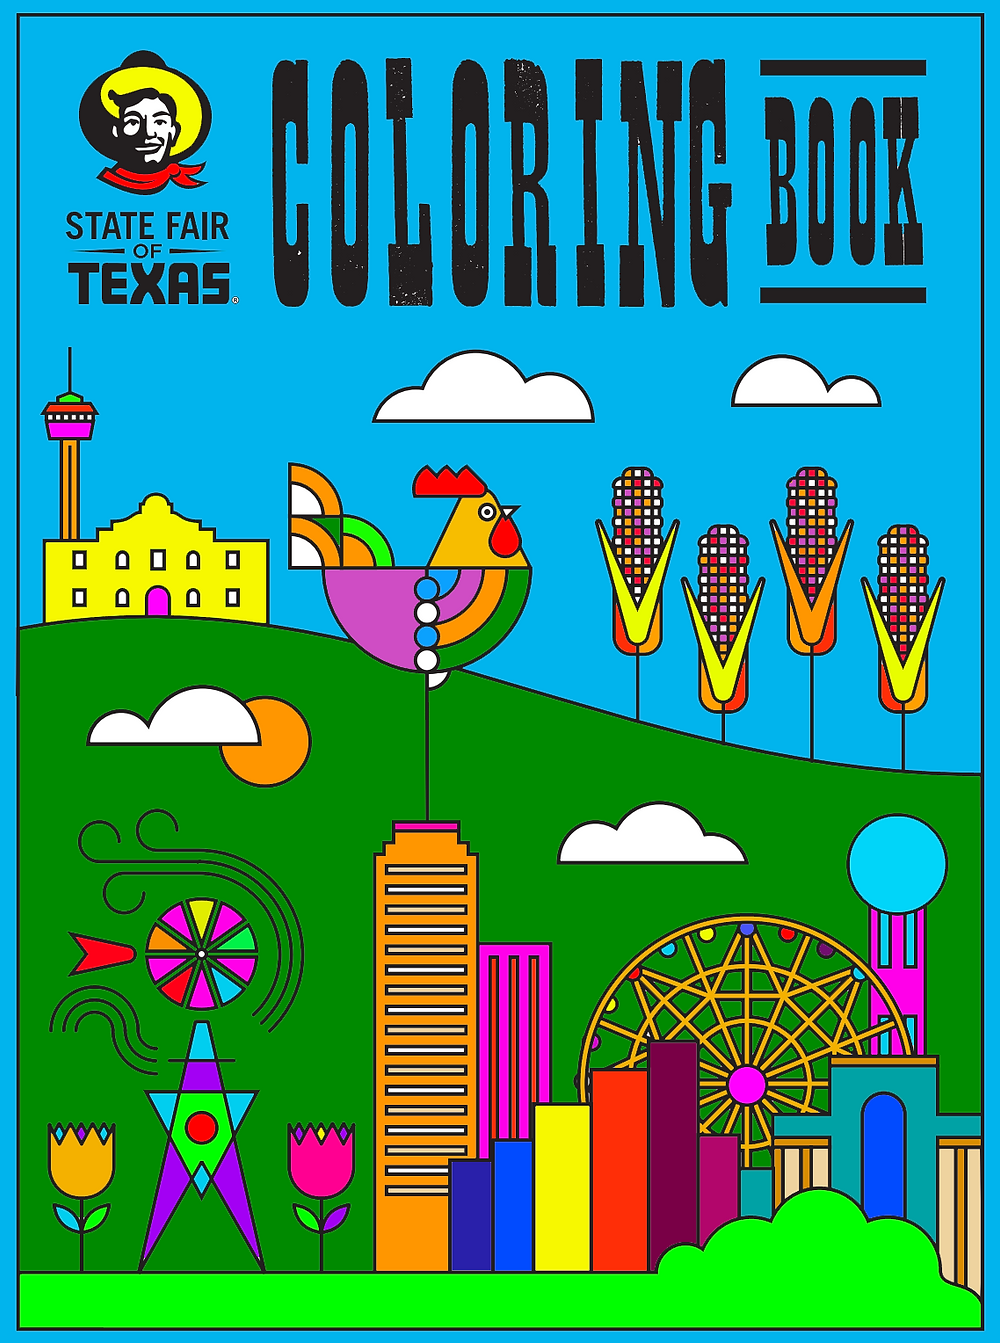 Download the free State Fair of Texas Coloring Book